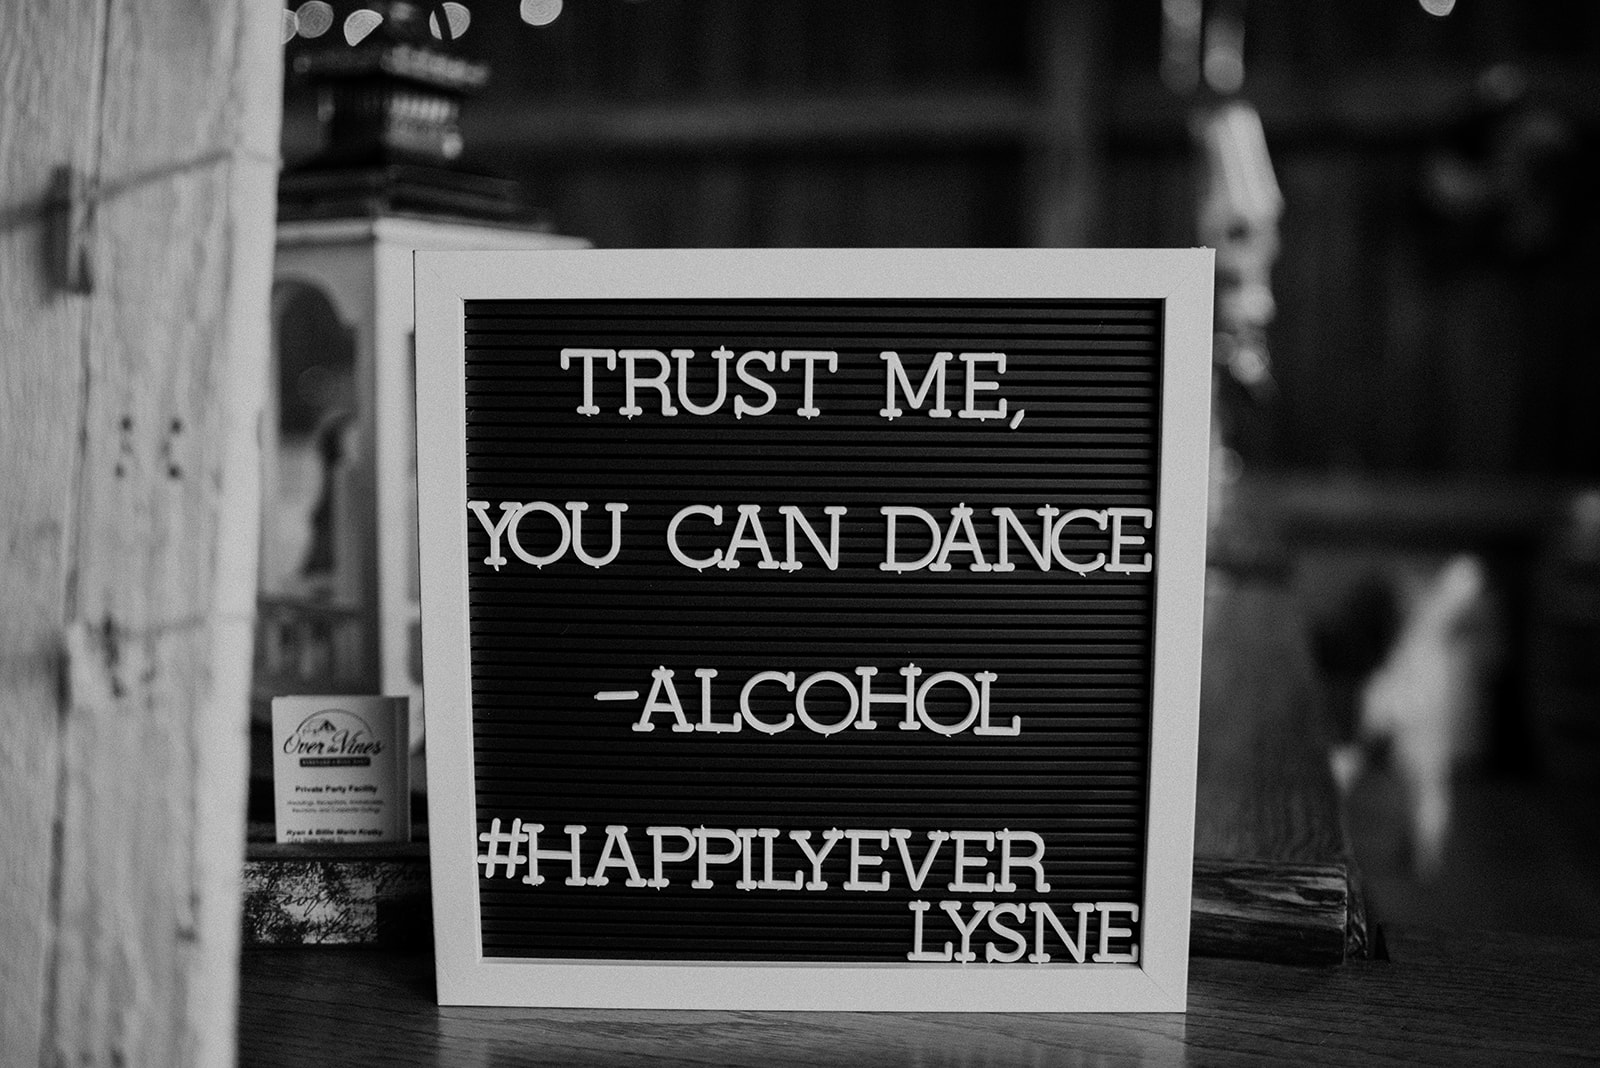 overthevineswisconsinwedding_1029.jpg